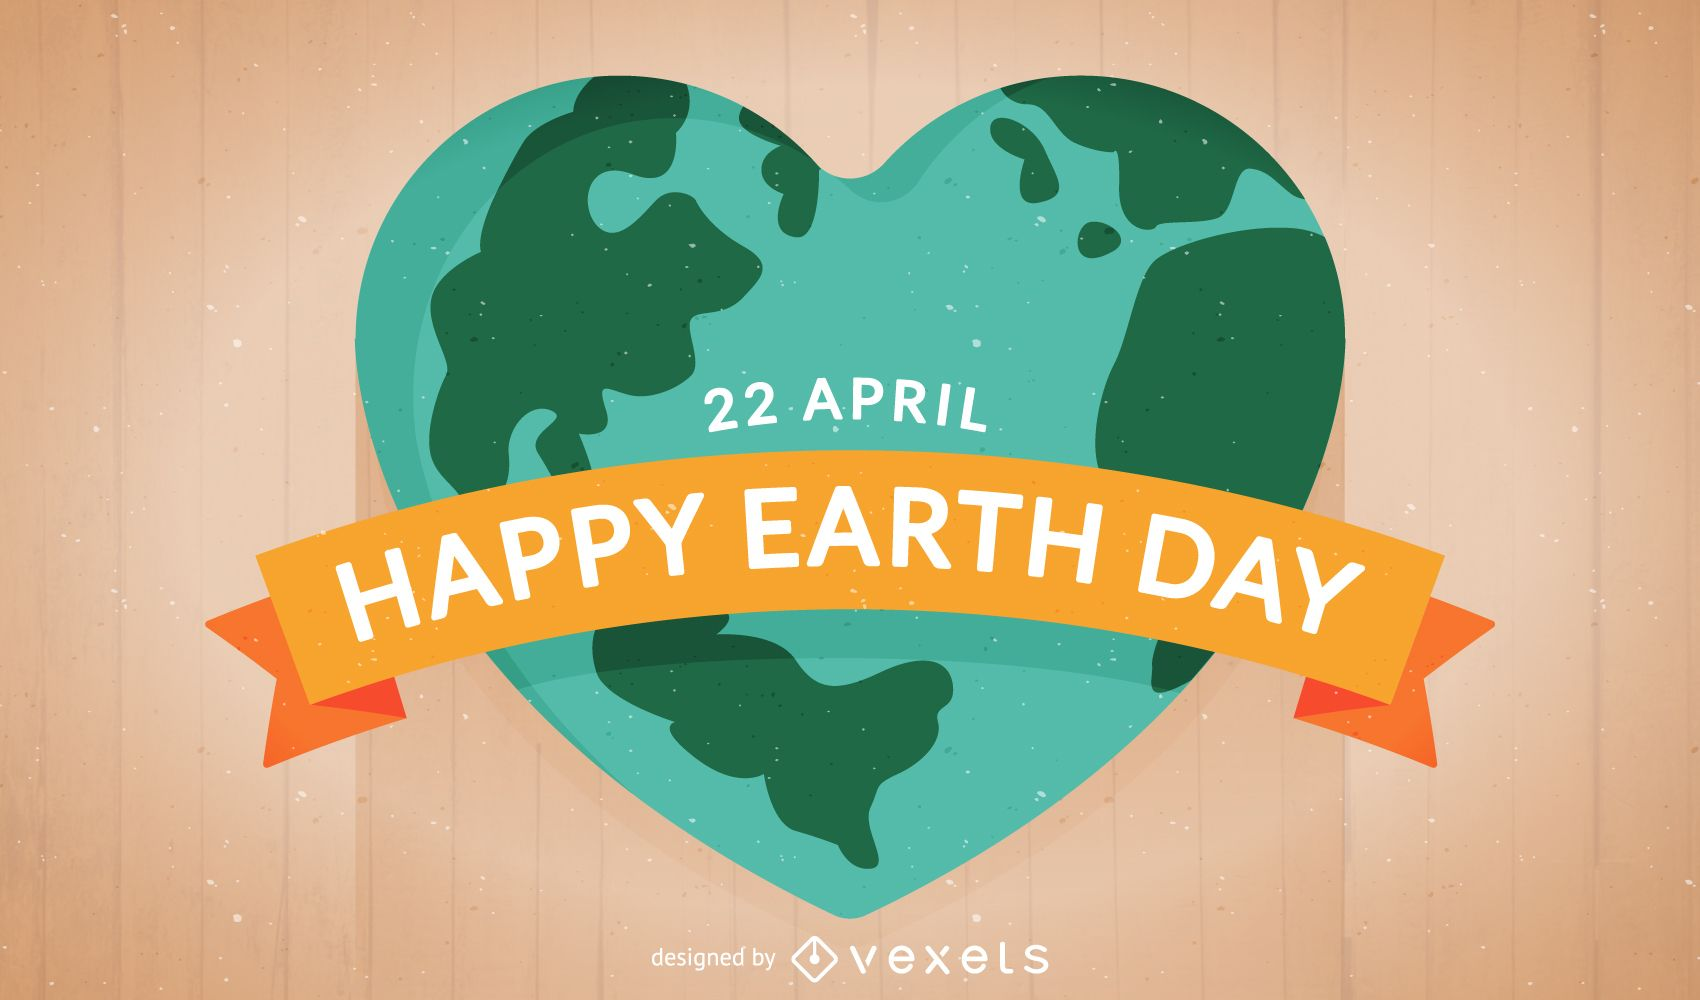 Flat Earth Day illustration with heart-shaped Earth